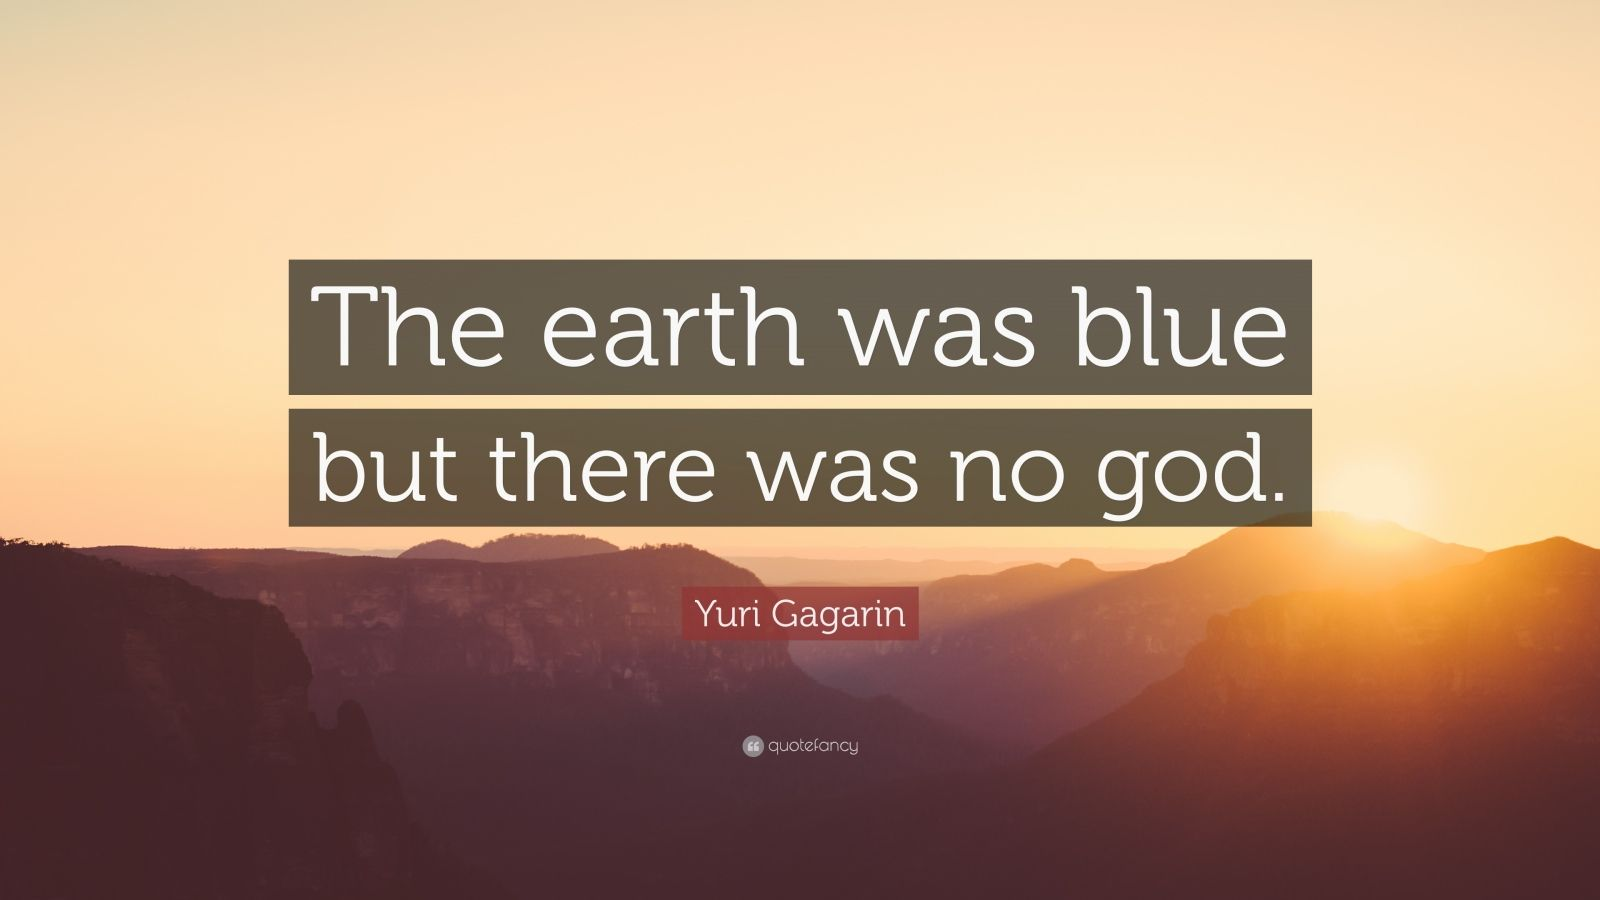 Yuri Gagarin Quotes Wallpaper Yuri Gagarin Quote The Earth Was Blue But There Was No